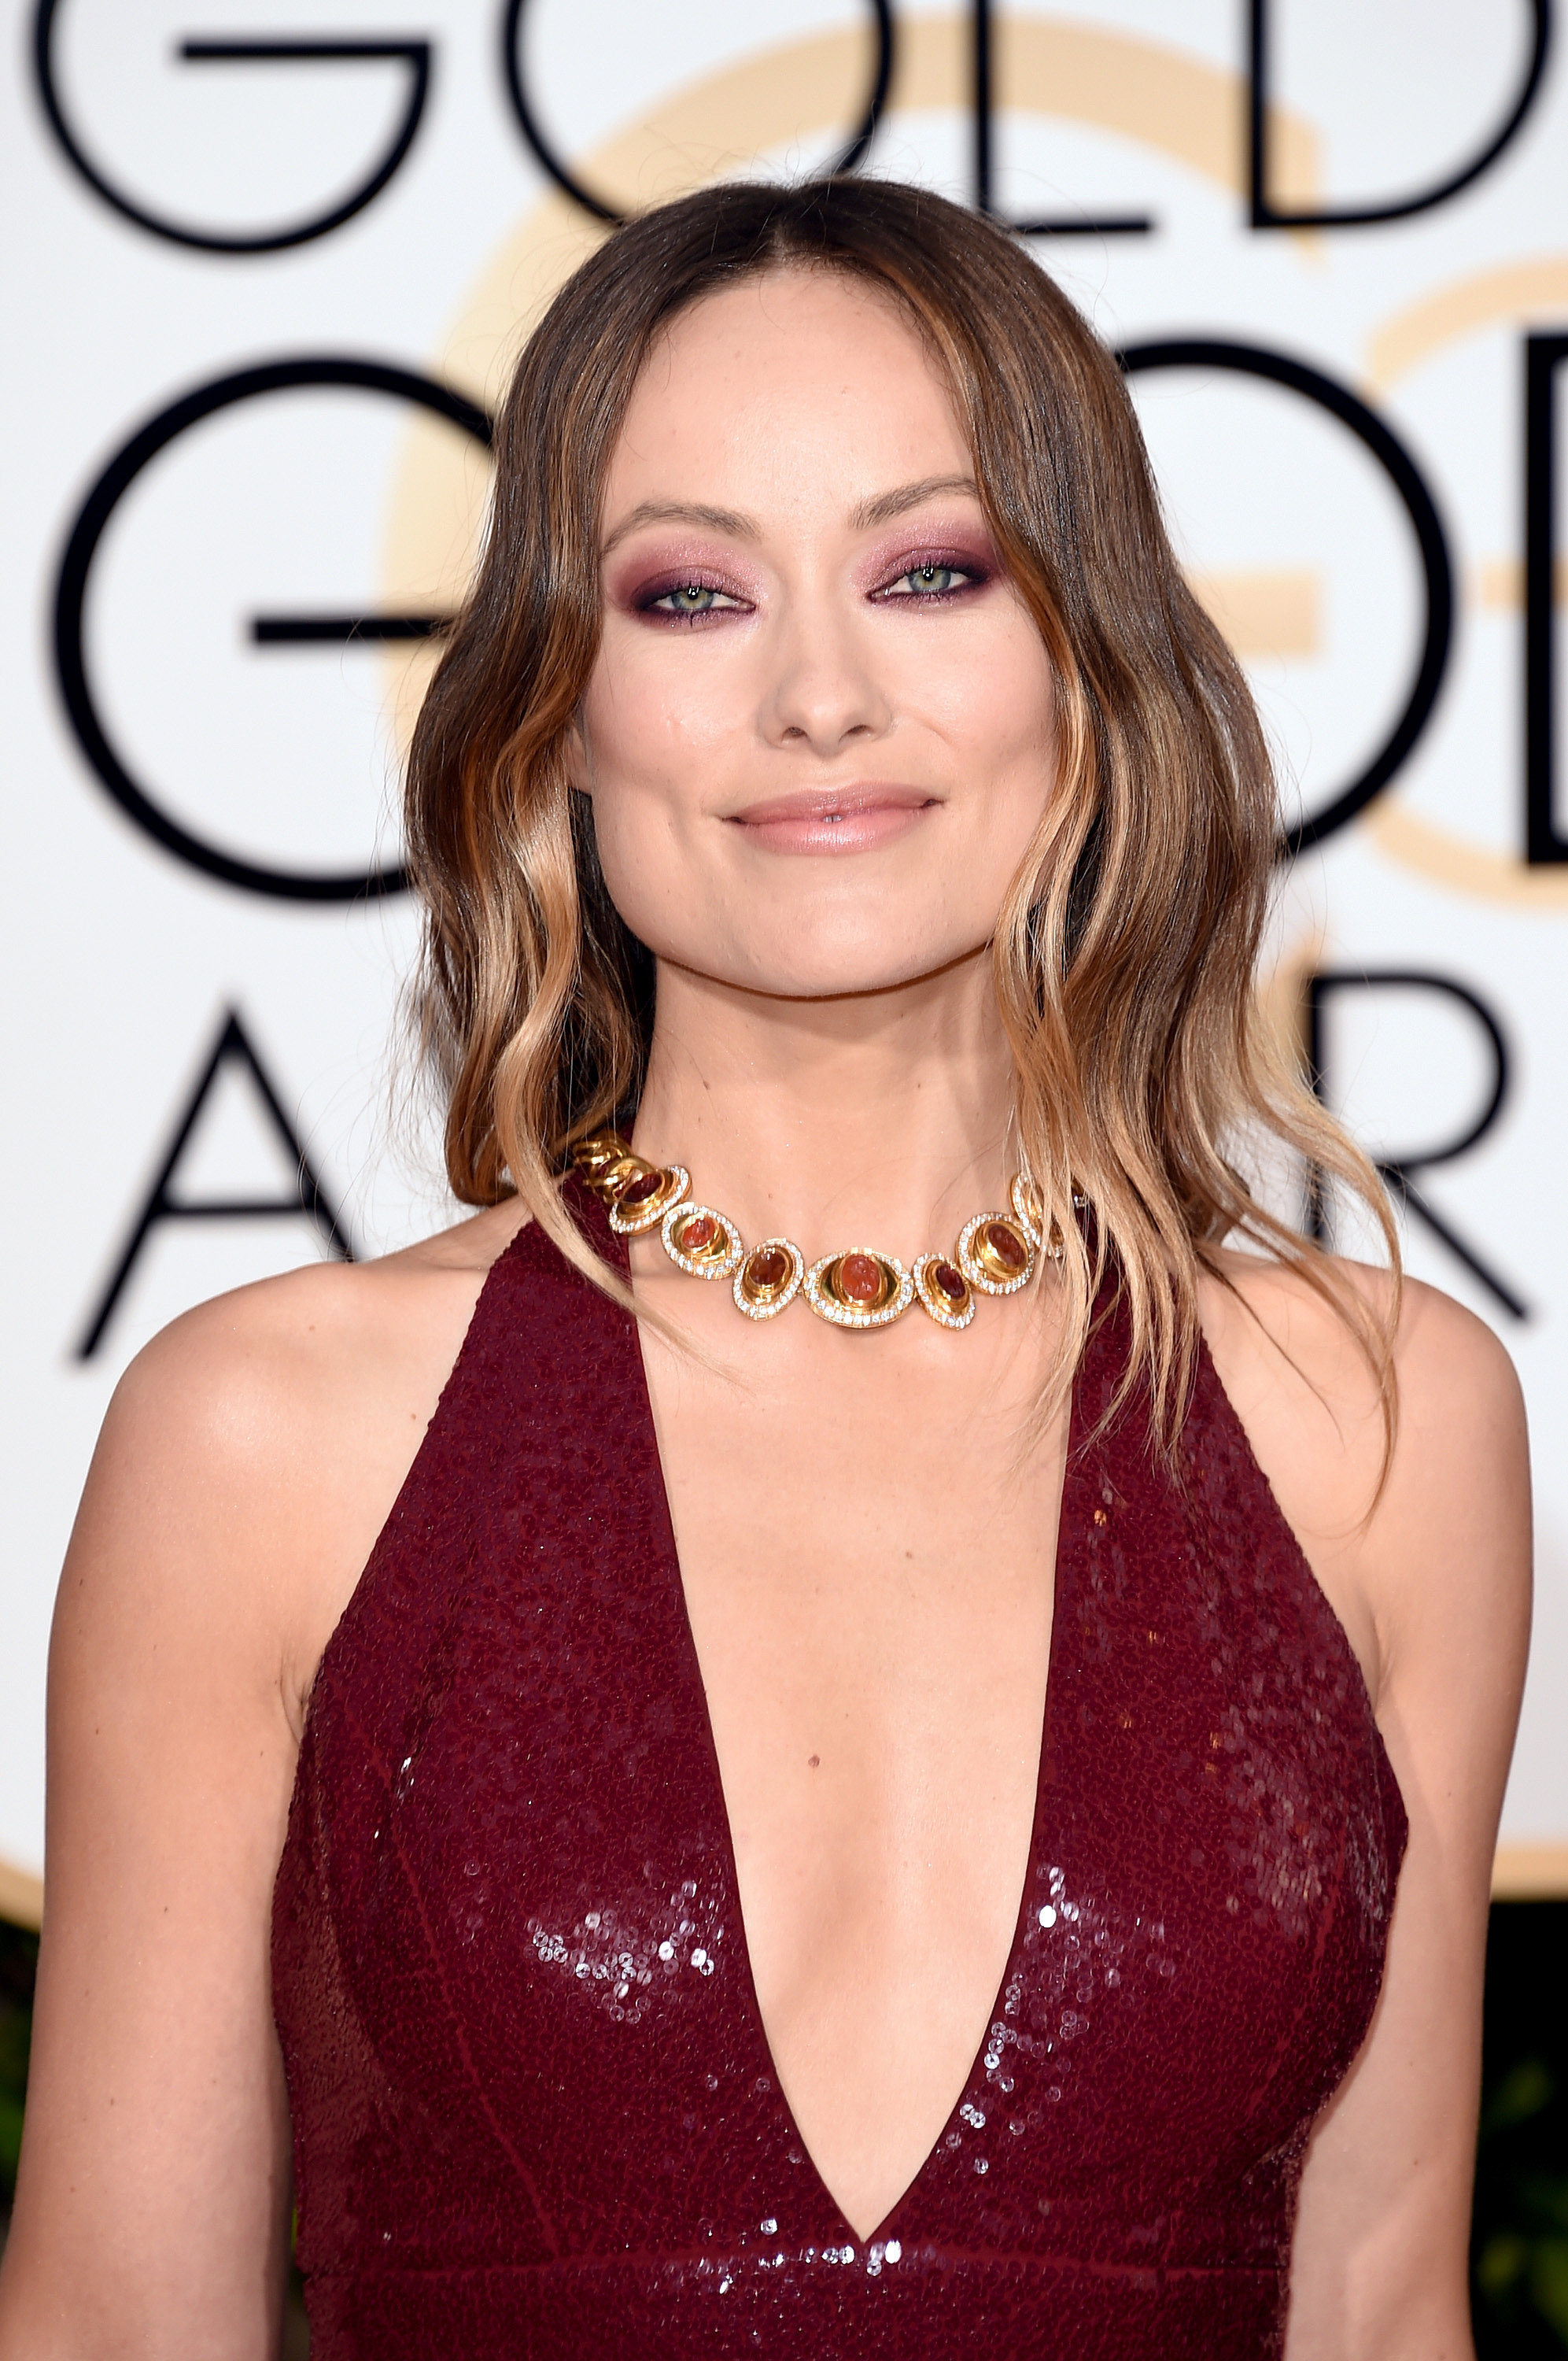 Olivia Wilde Profile And New Pictures 2013: Olivia Wilde's Eye Makeup At Golden Globes 2016